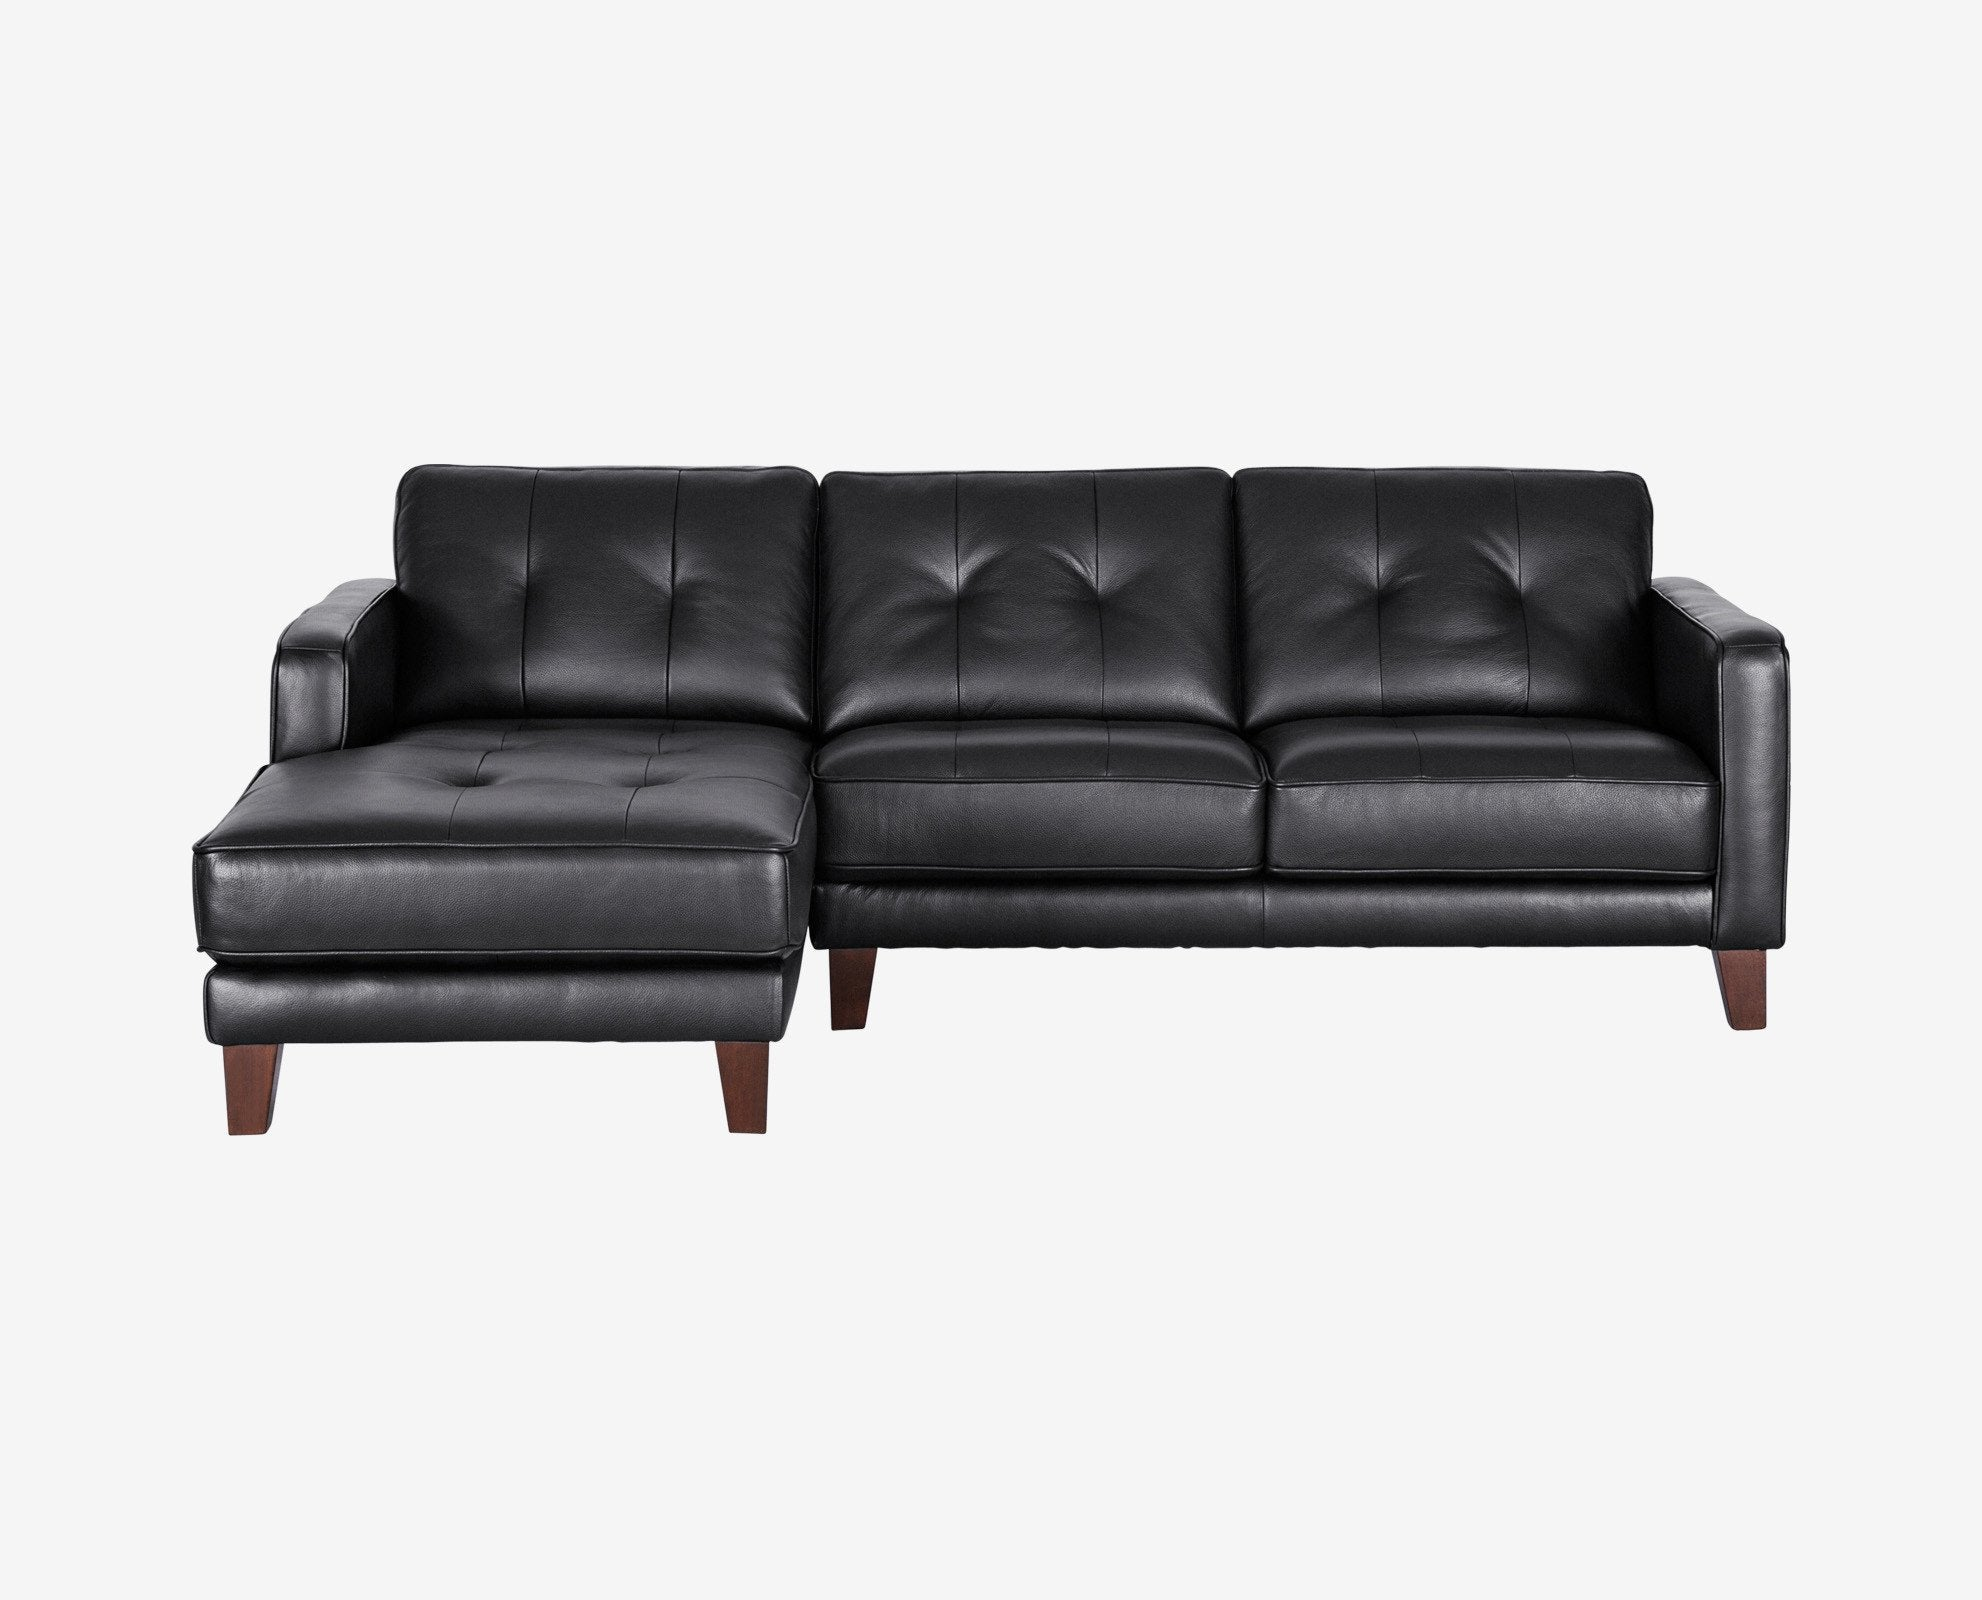 Black contemporary tufted leather chaise sectional